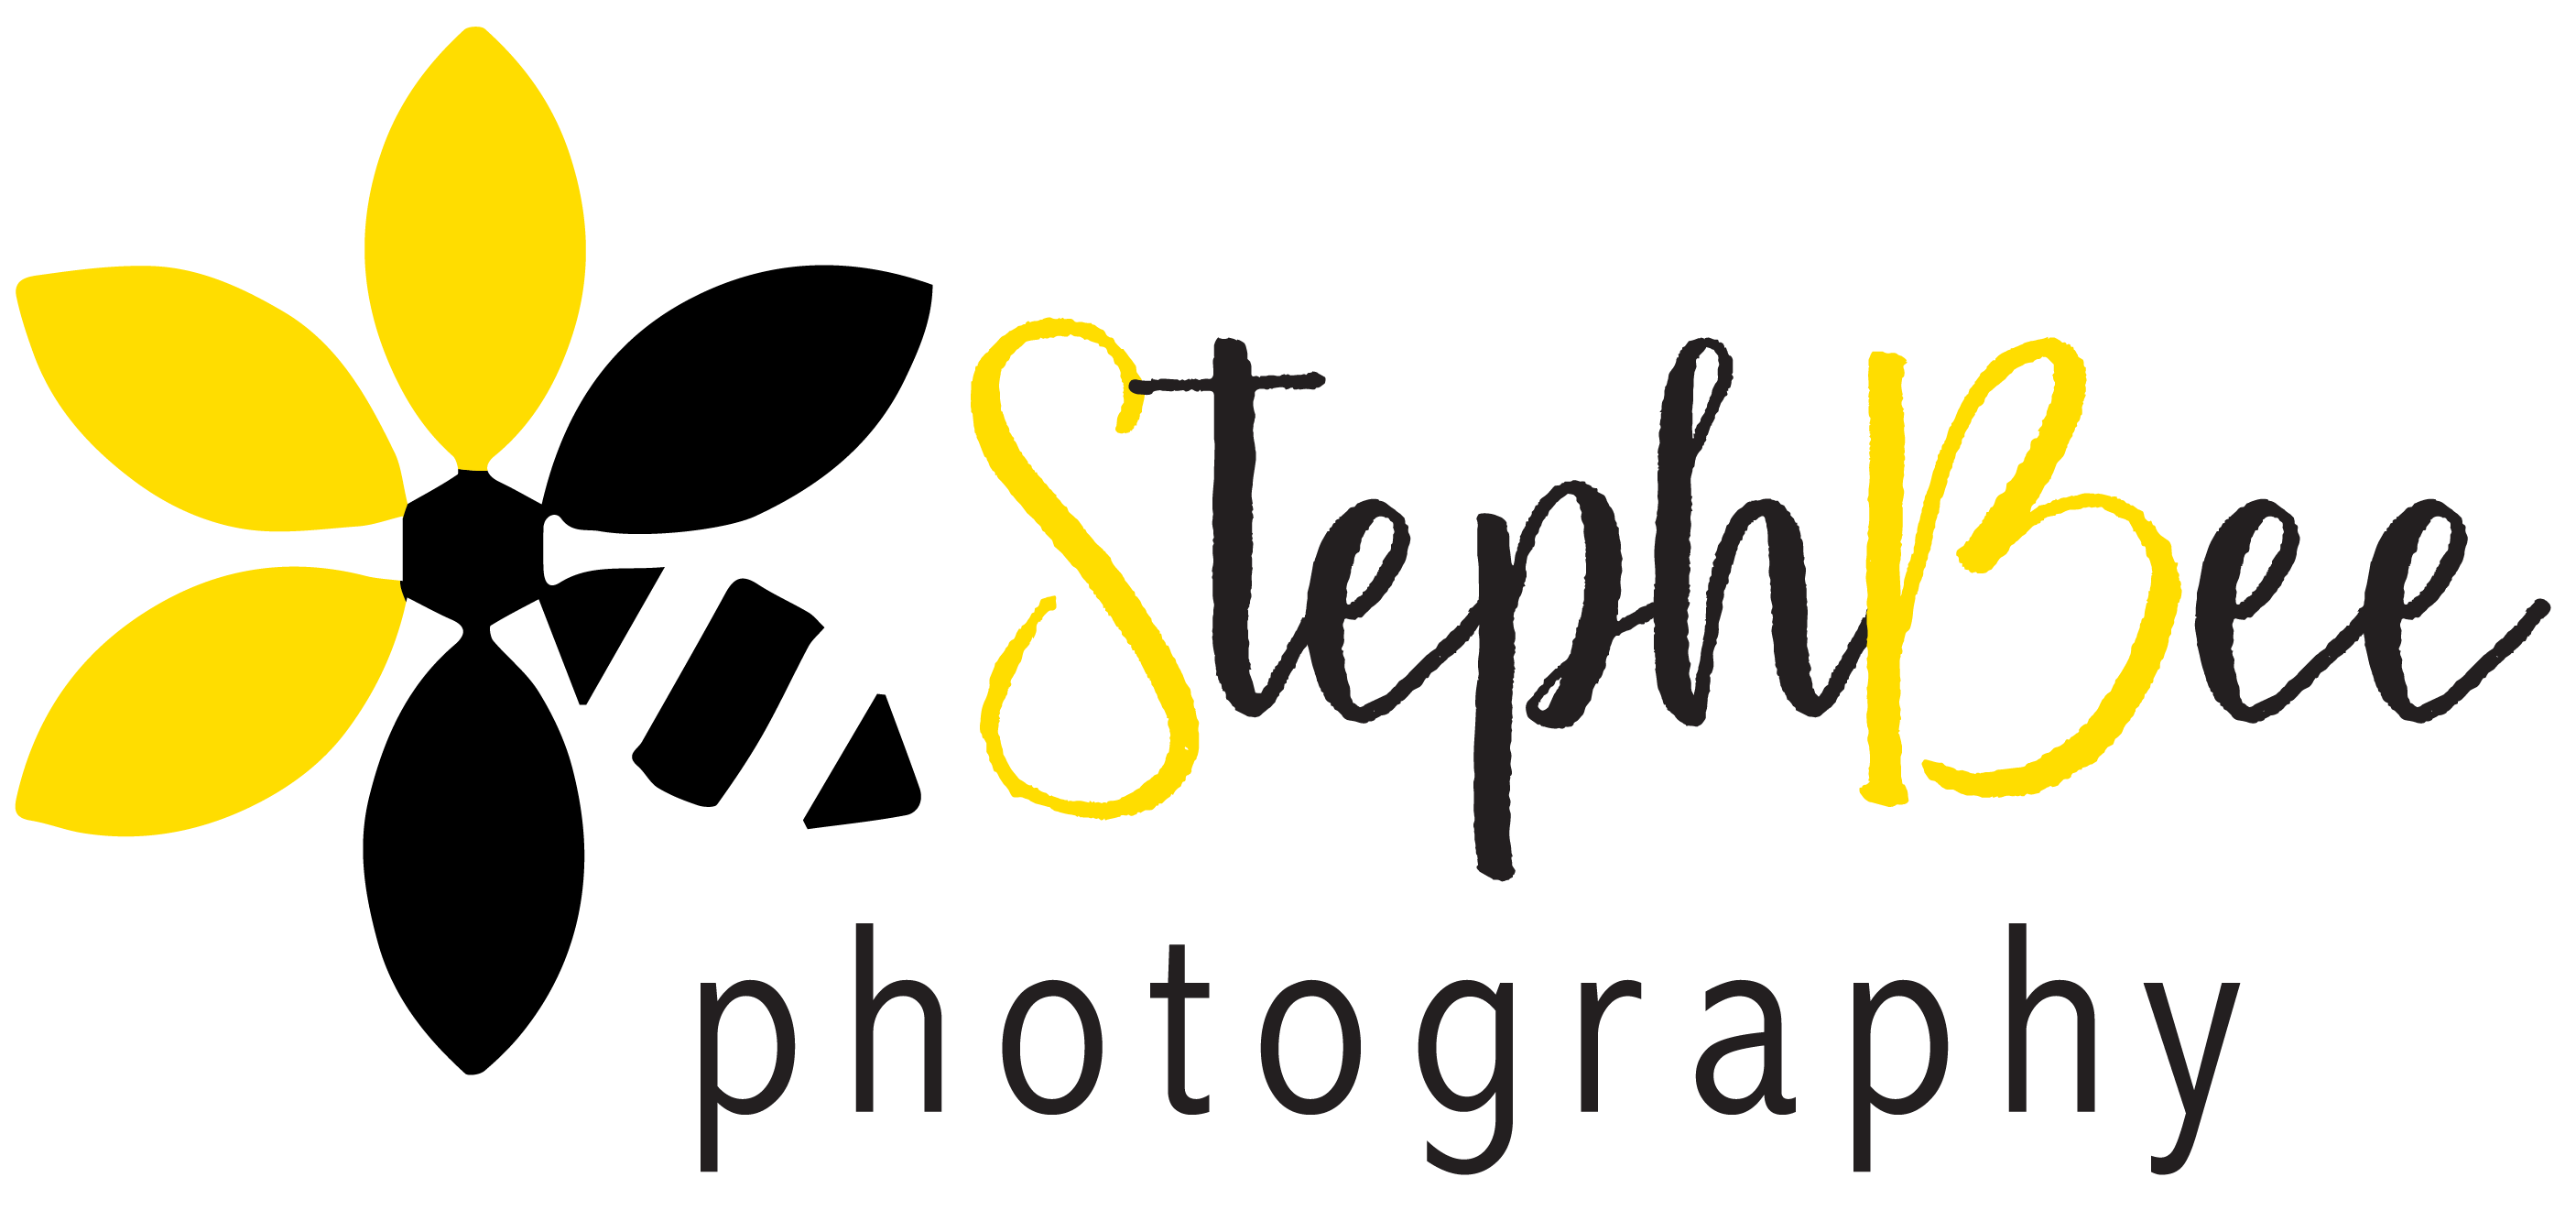 Steph bee photography orlando. Memories clipart memory problem